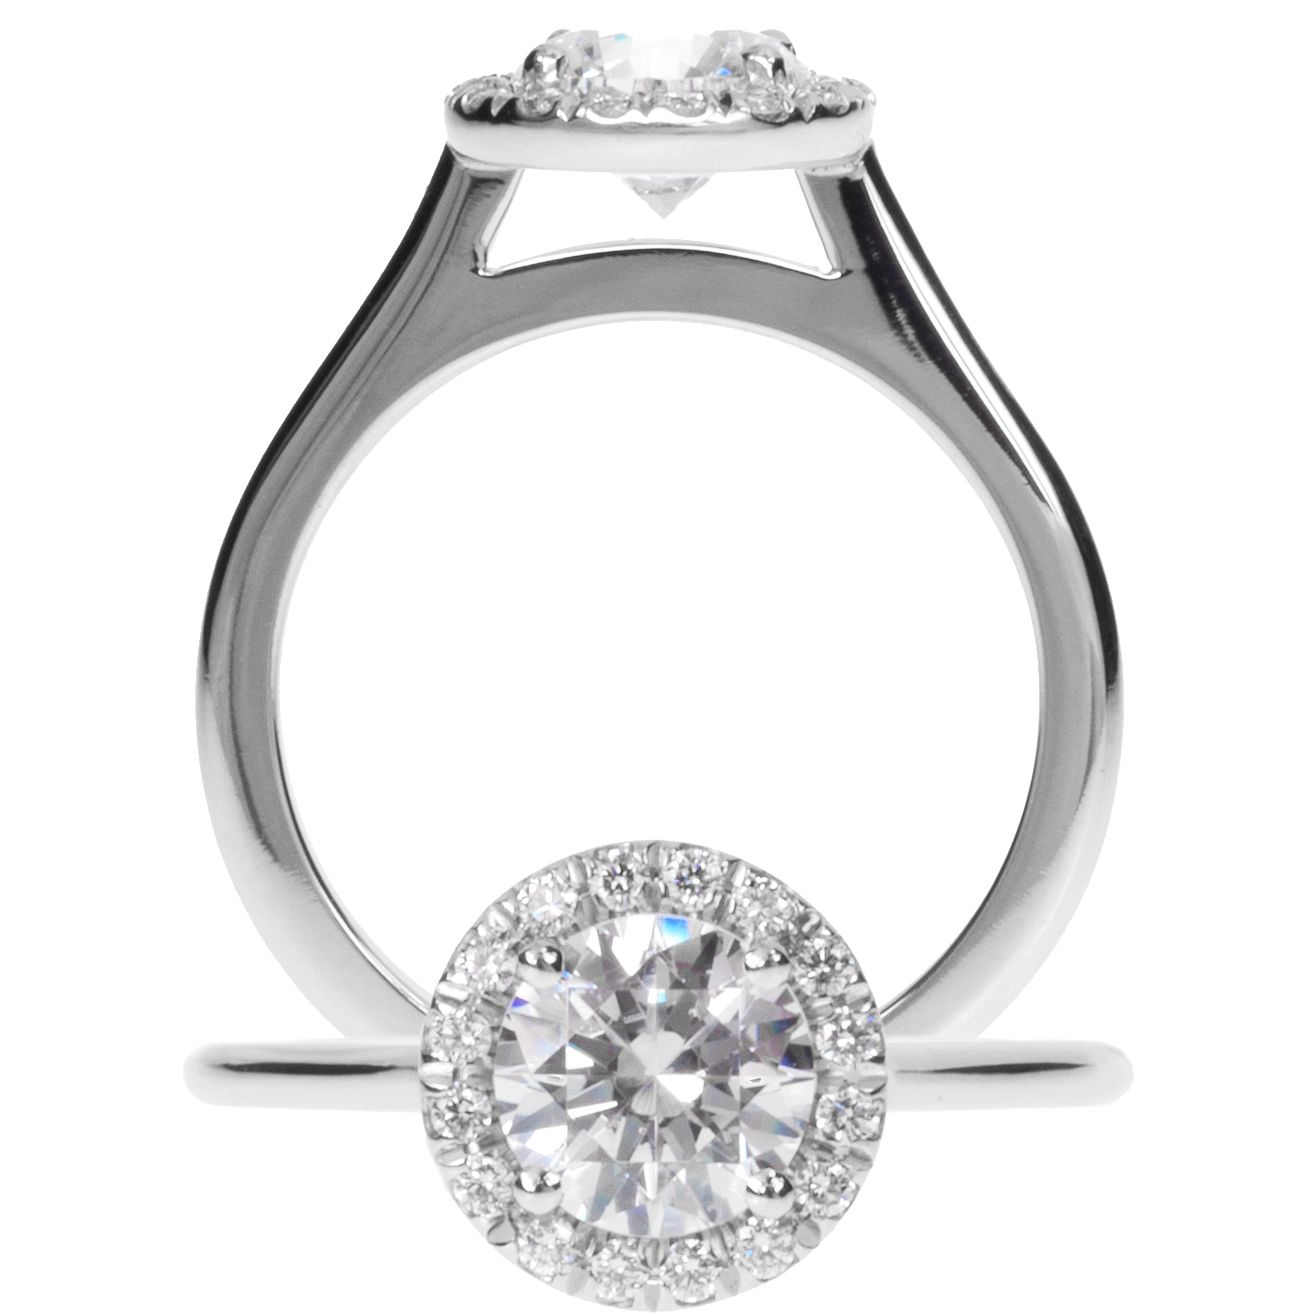 full engagement product rebeccaovermann mark rings rebecca patterson bezel arrivals finished ring overmann new